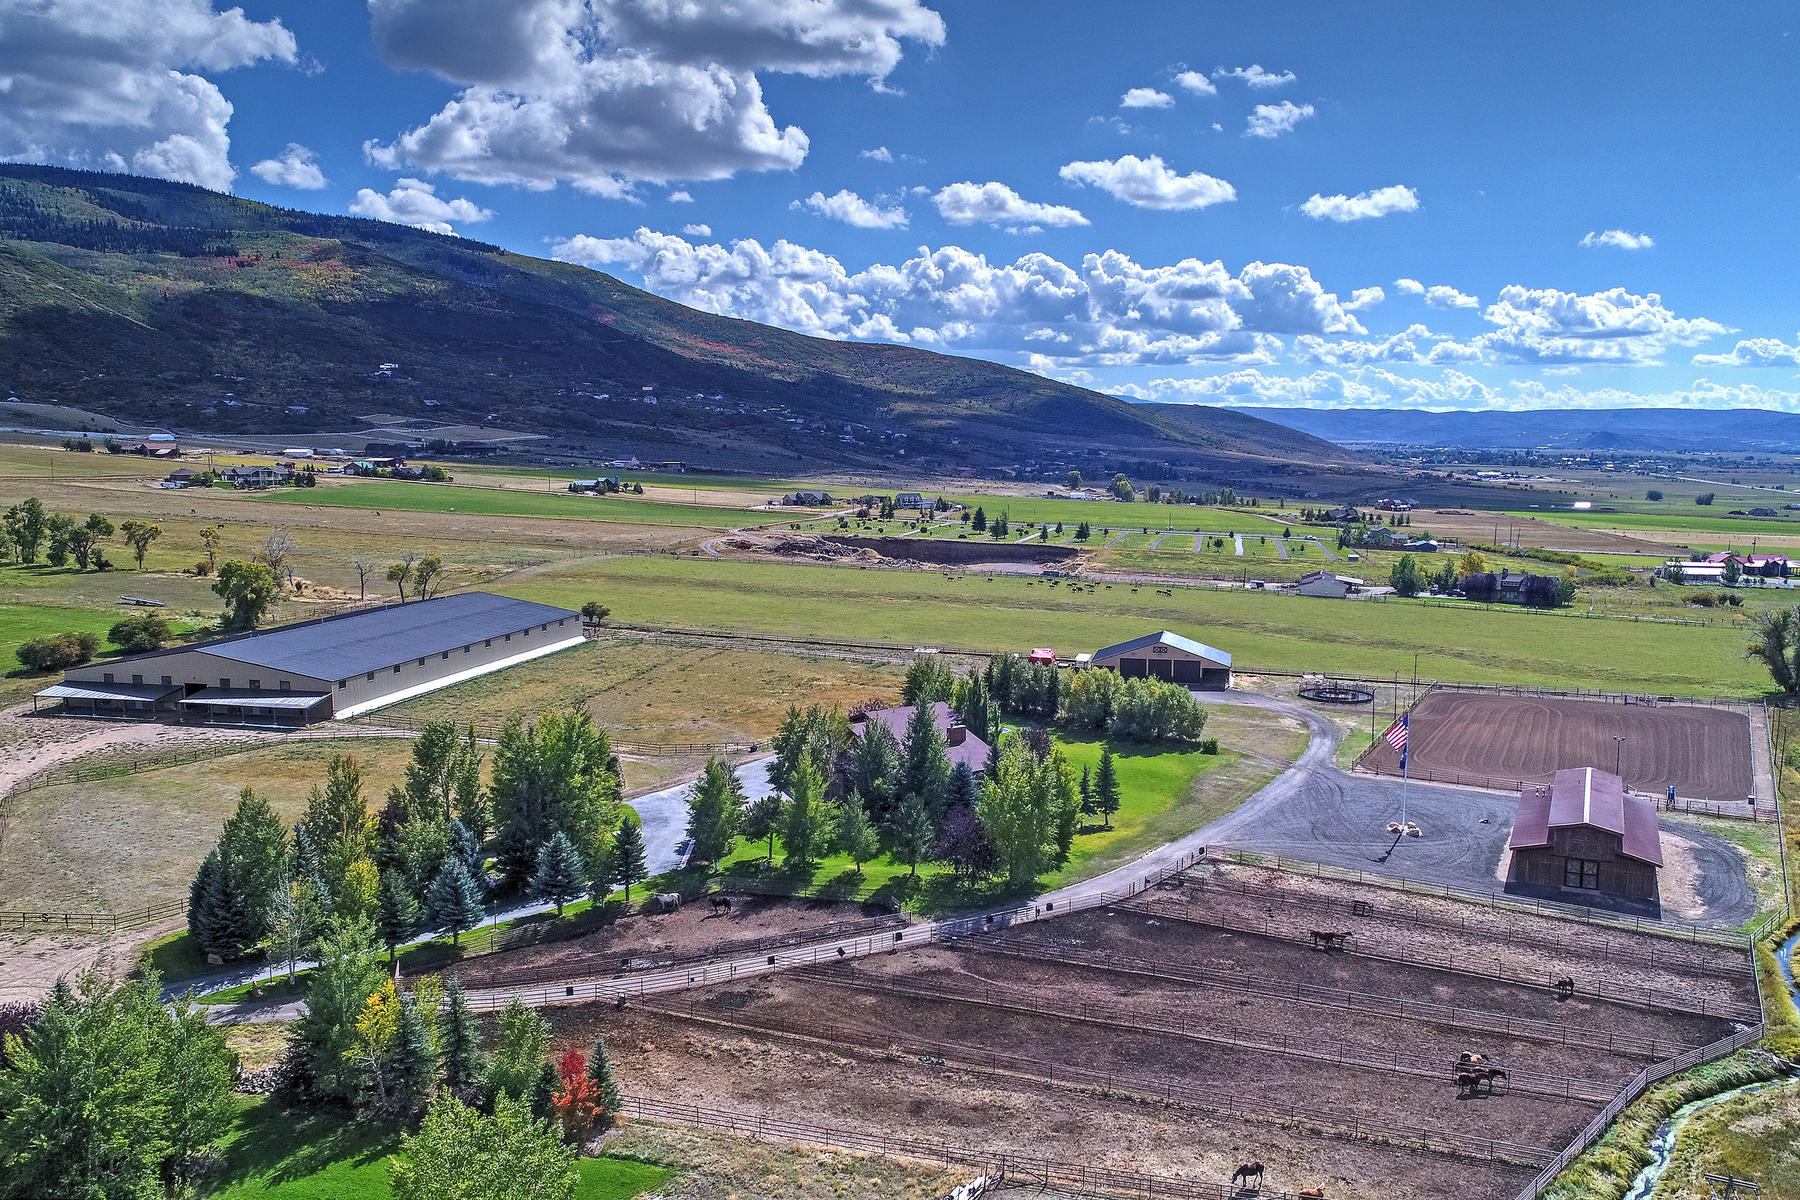 Villa per Vendita alle ore Horse Lover's Dream 750 East 3200 North, Kamas, Utah, 84036 Stati Uniti